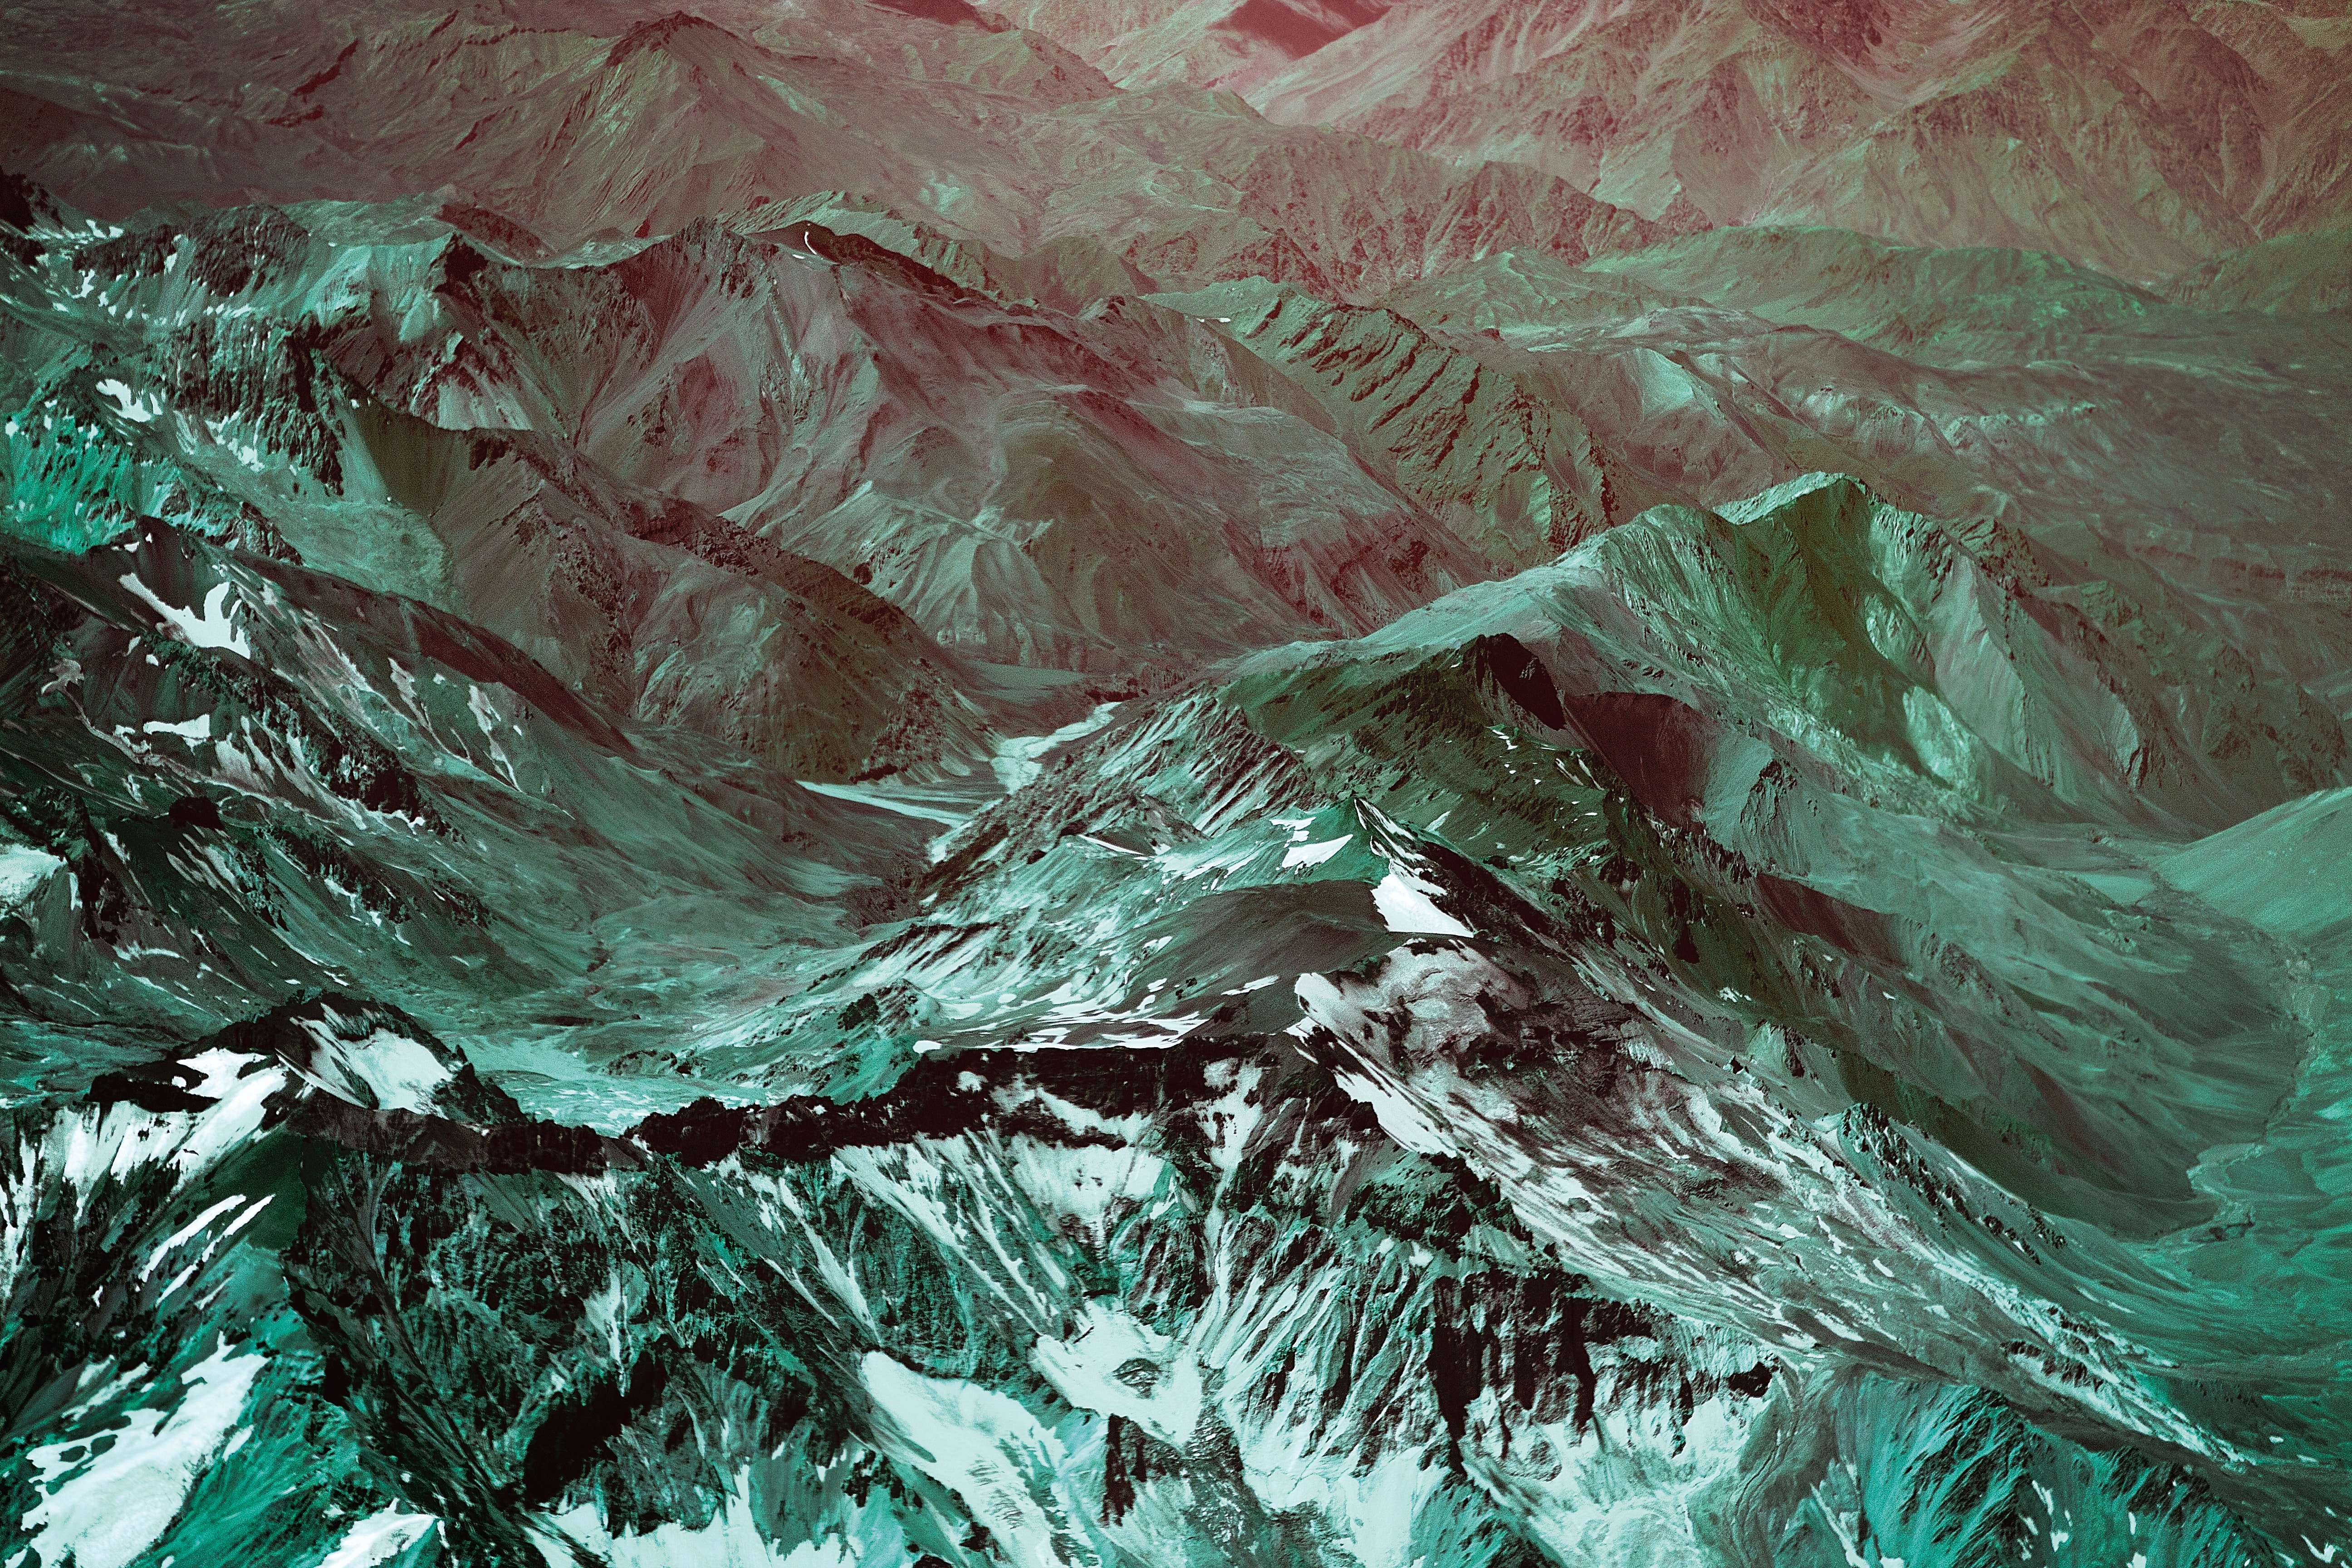 A green-hued aerial shot of the sharp ridges in the Andes